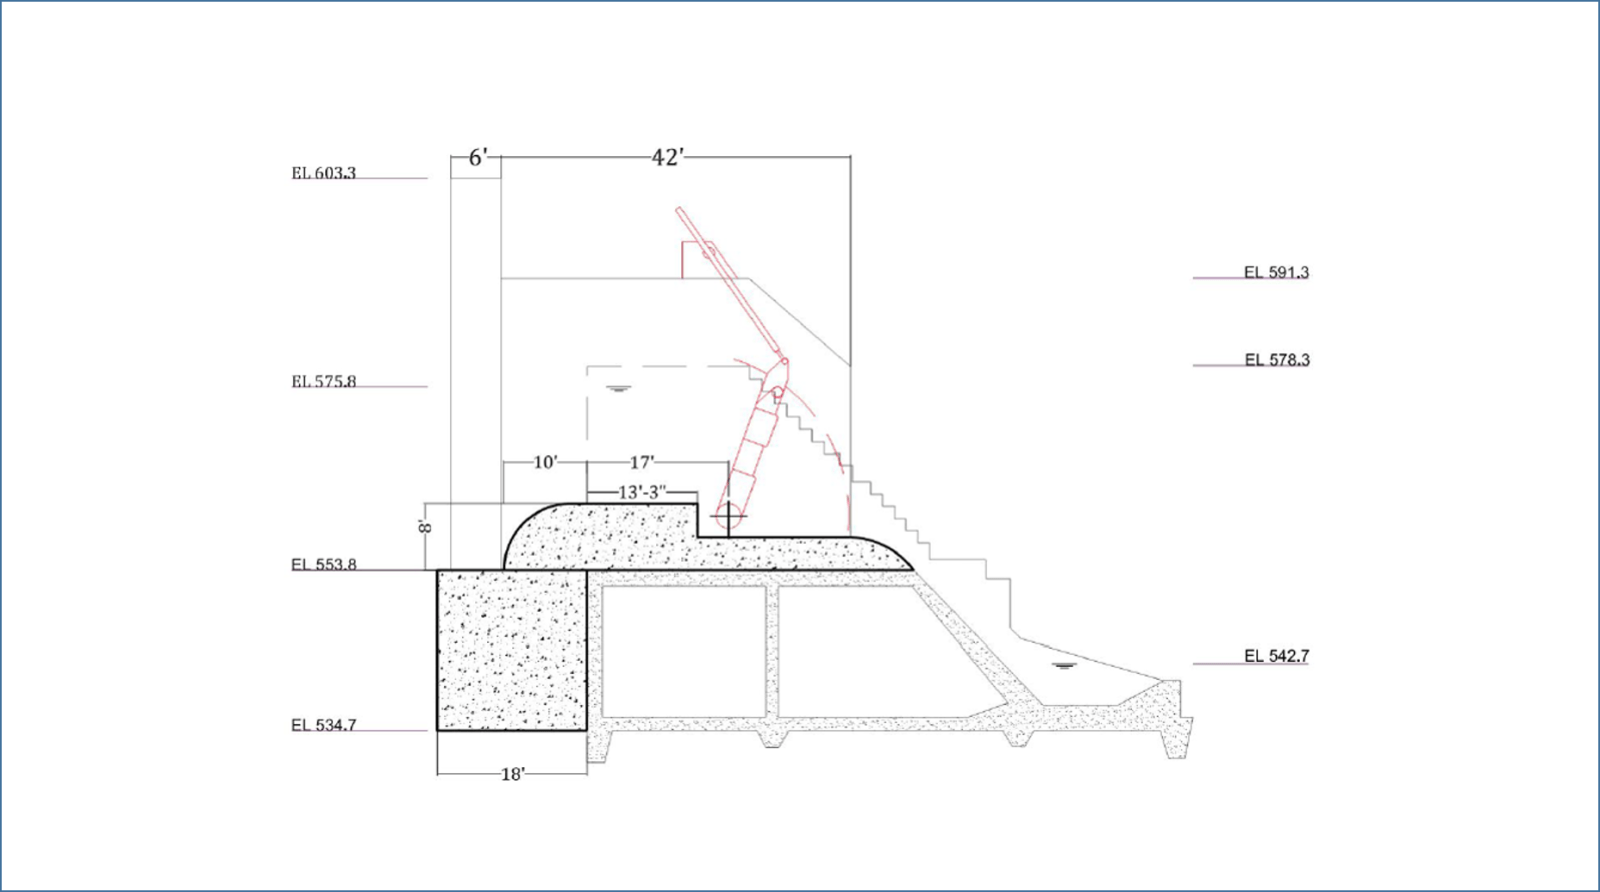 small resolution of  to modify the dam in a manner that will allow the gates to be attached to the structure a schematic of these improvements is shown outlined in black in